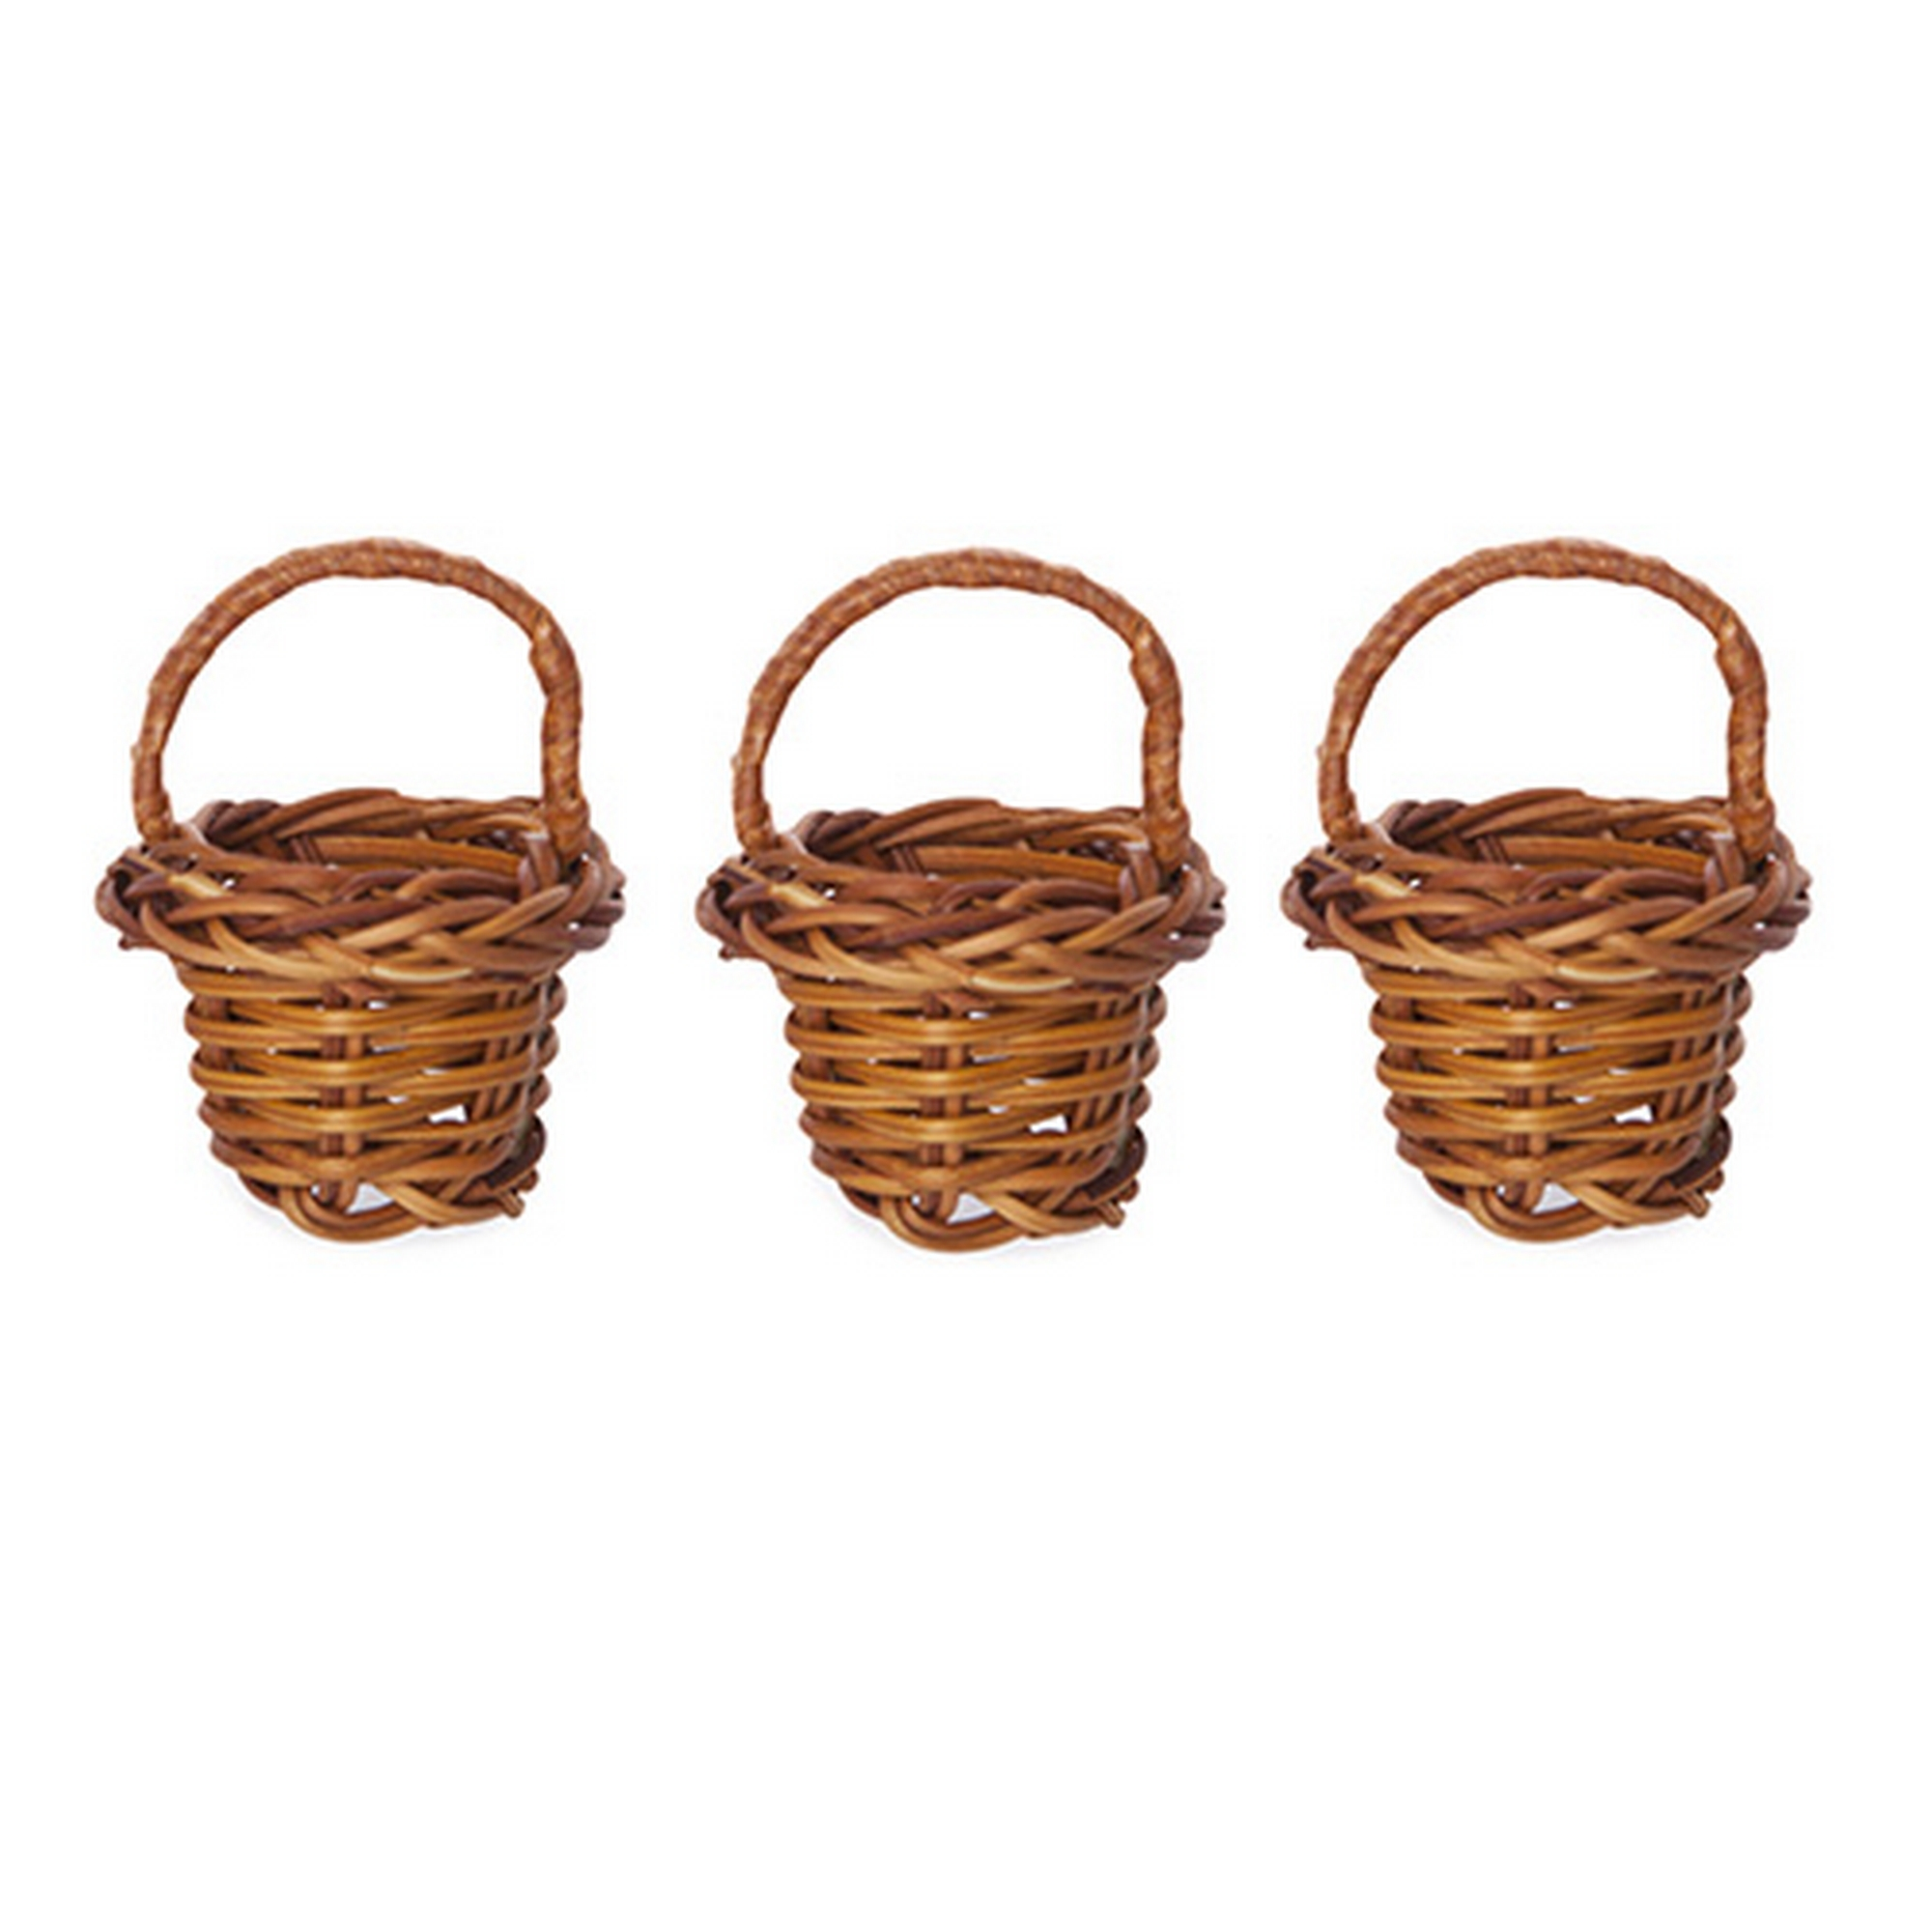 How To Weave A Mini Basket : Miniature woven wicker basket for crafting purposes